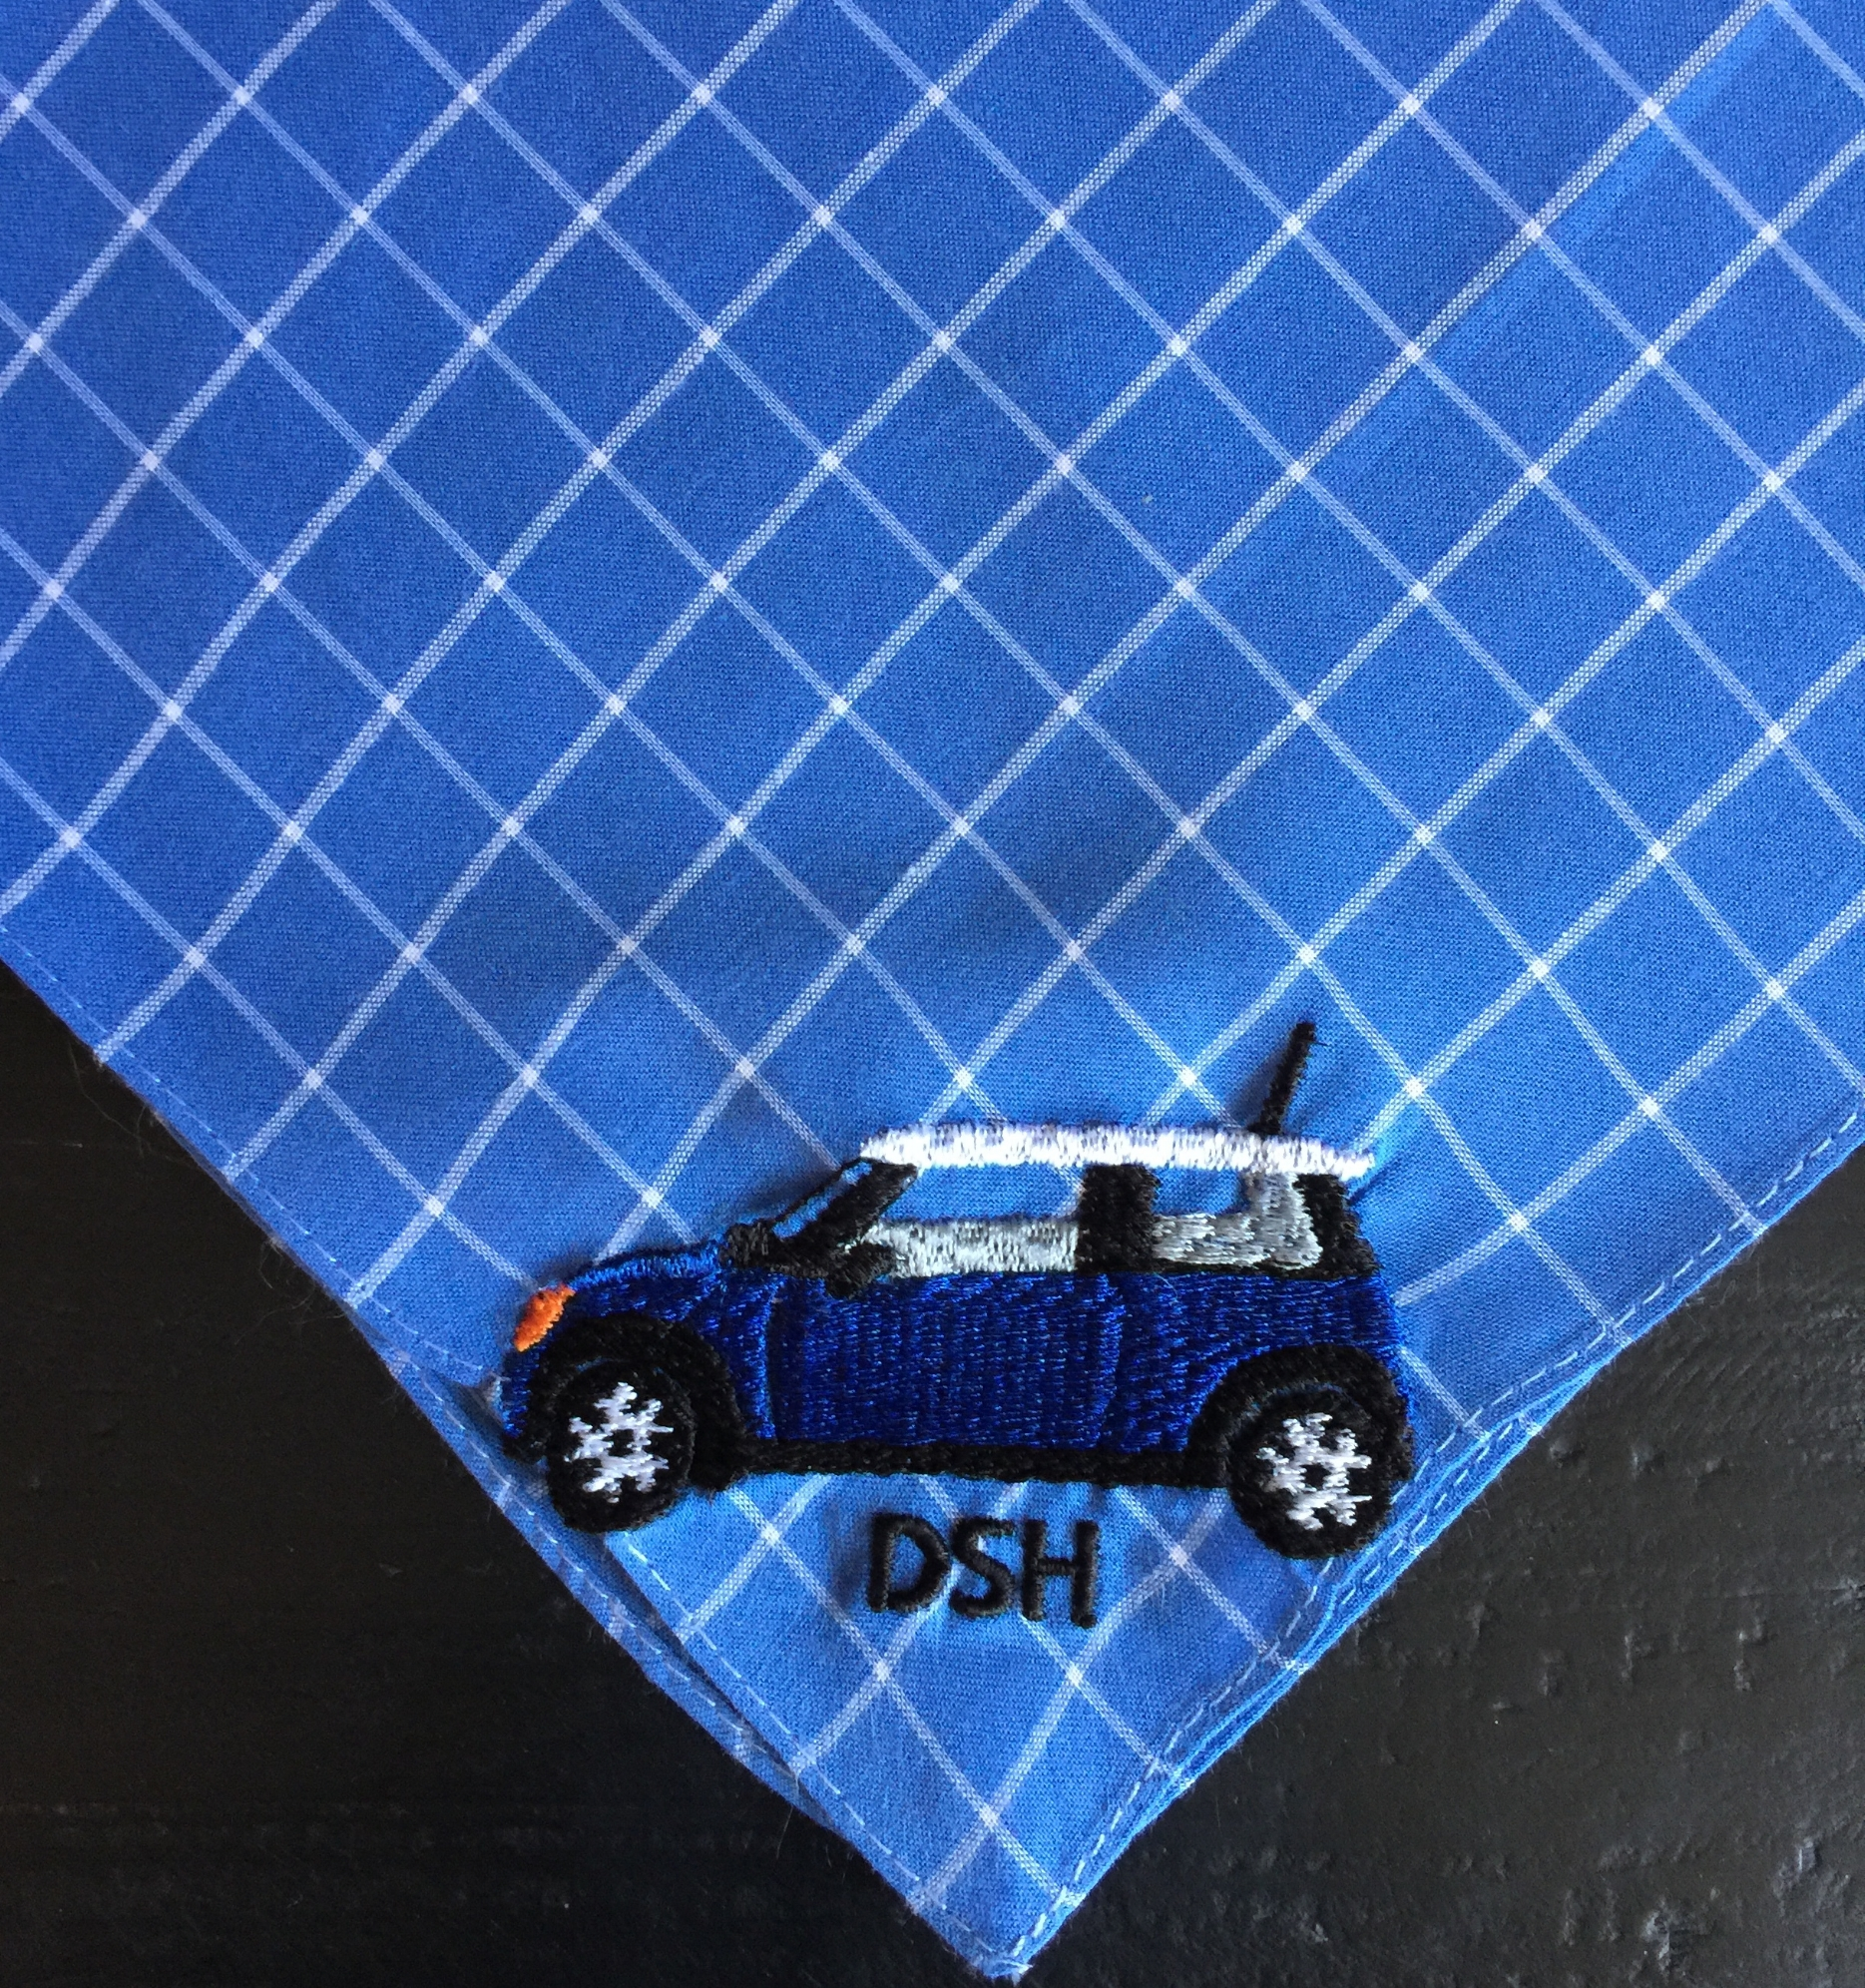 Clubman Mini Cooper Custom Embroidered Handkerchief